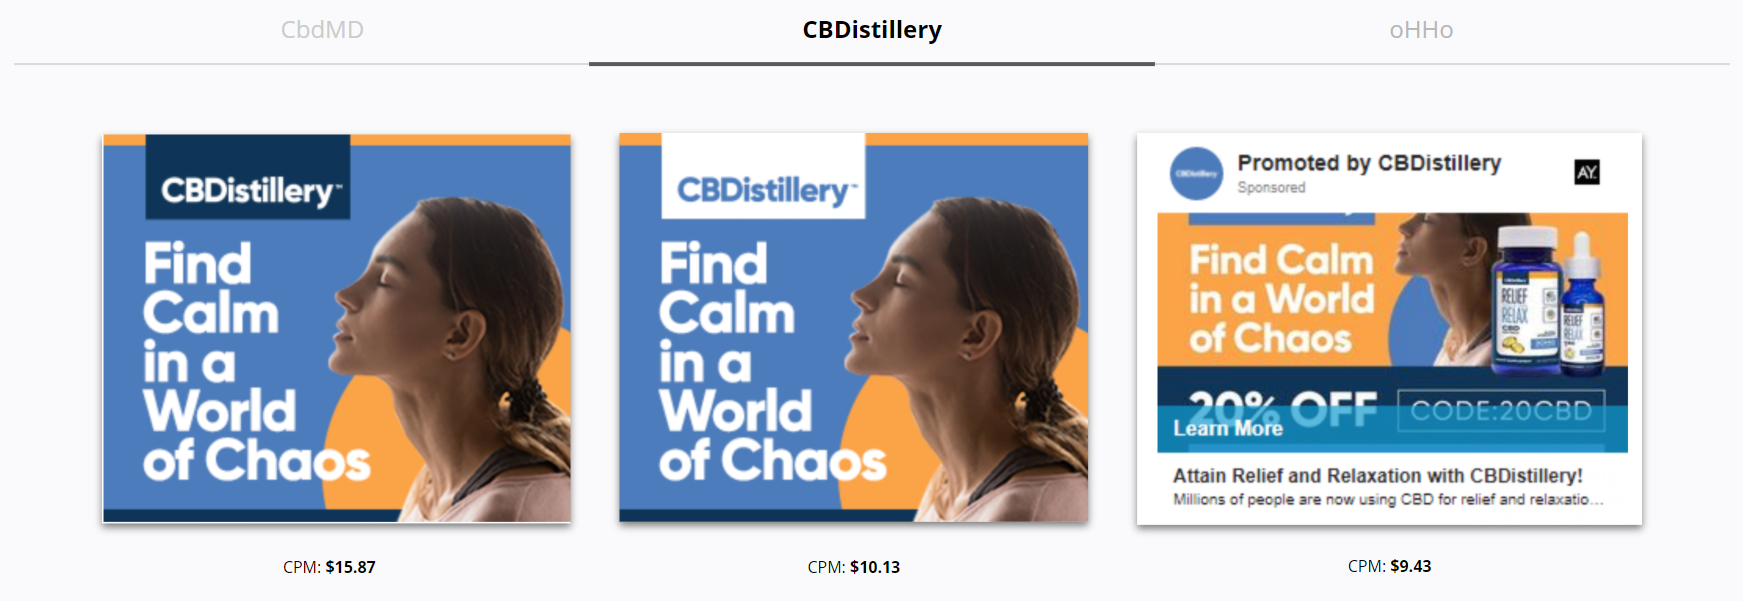 CBDistillery - World of Chaos - Finding Calm and Relaxation